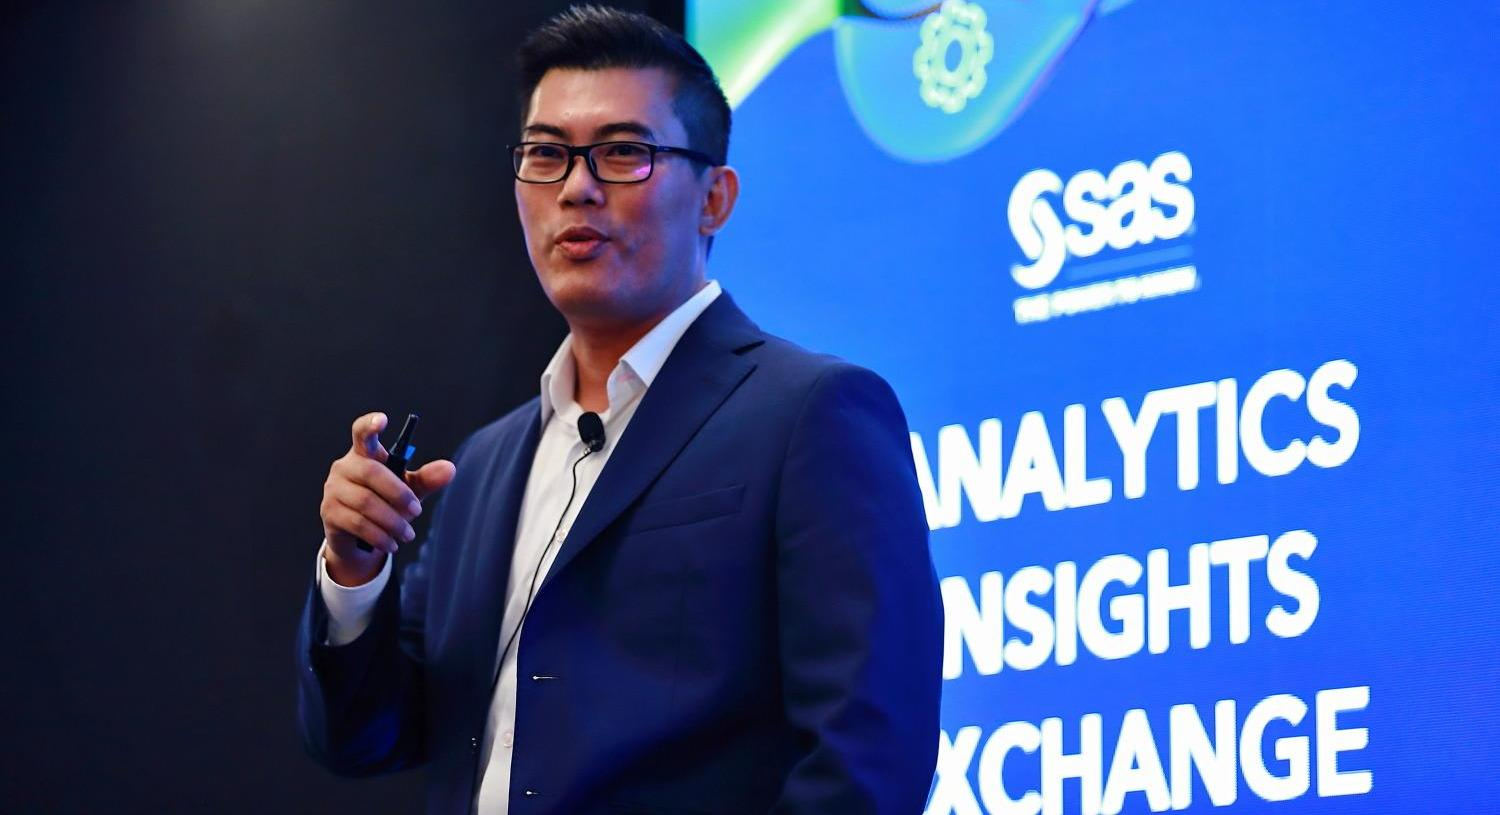 SAS male employee presenting on stage